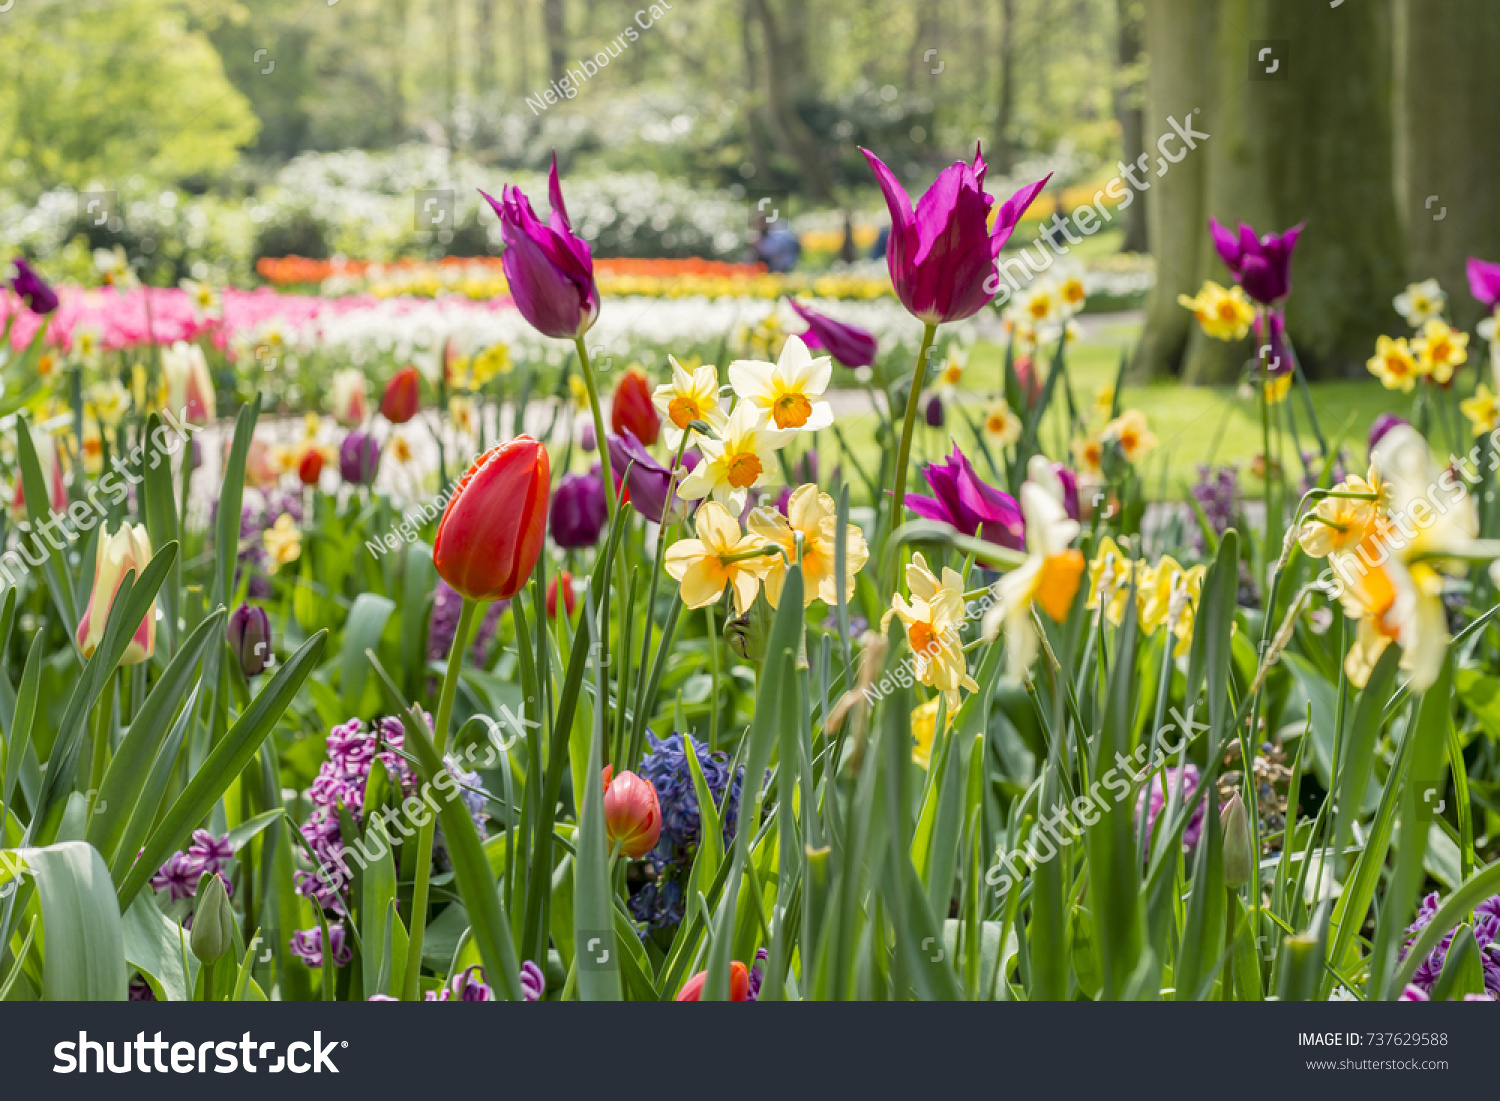 Colorful Spring Flower Bed Tulips Narcissus Stock Photo Edit Now